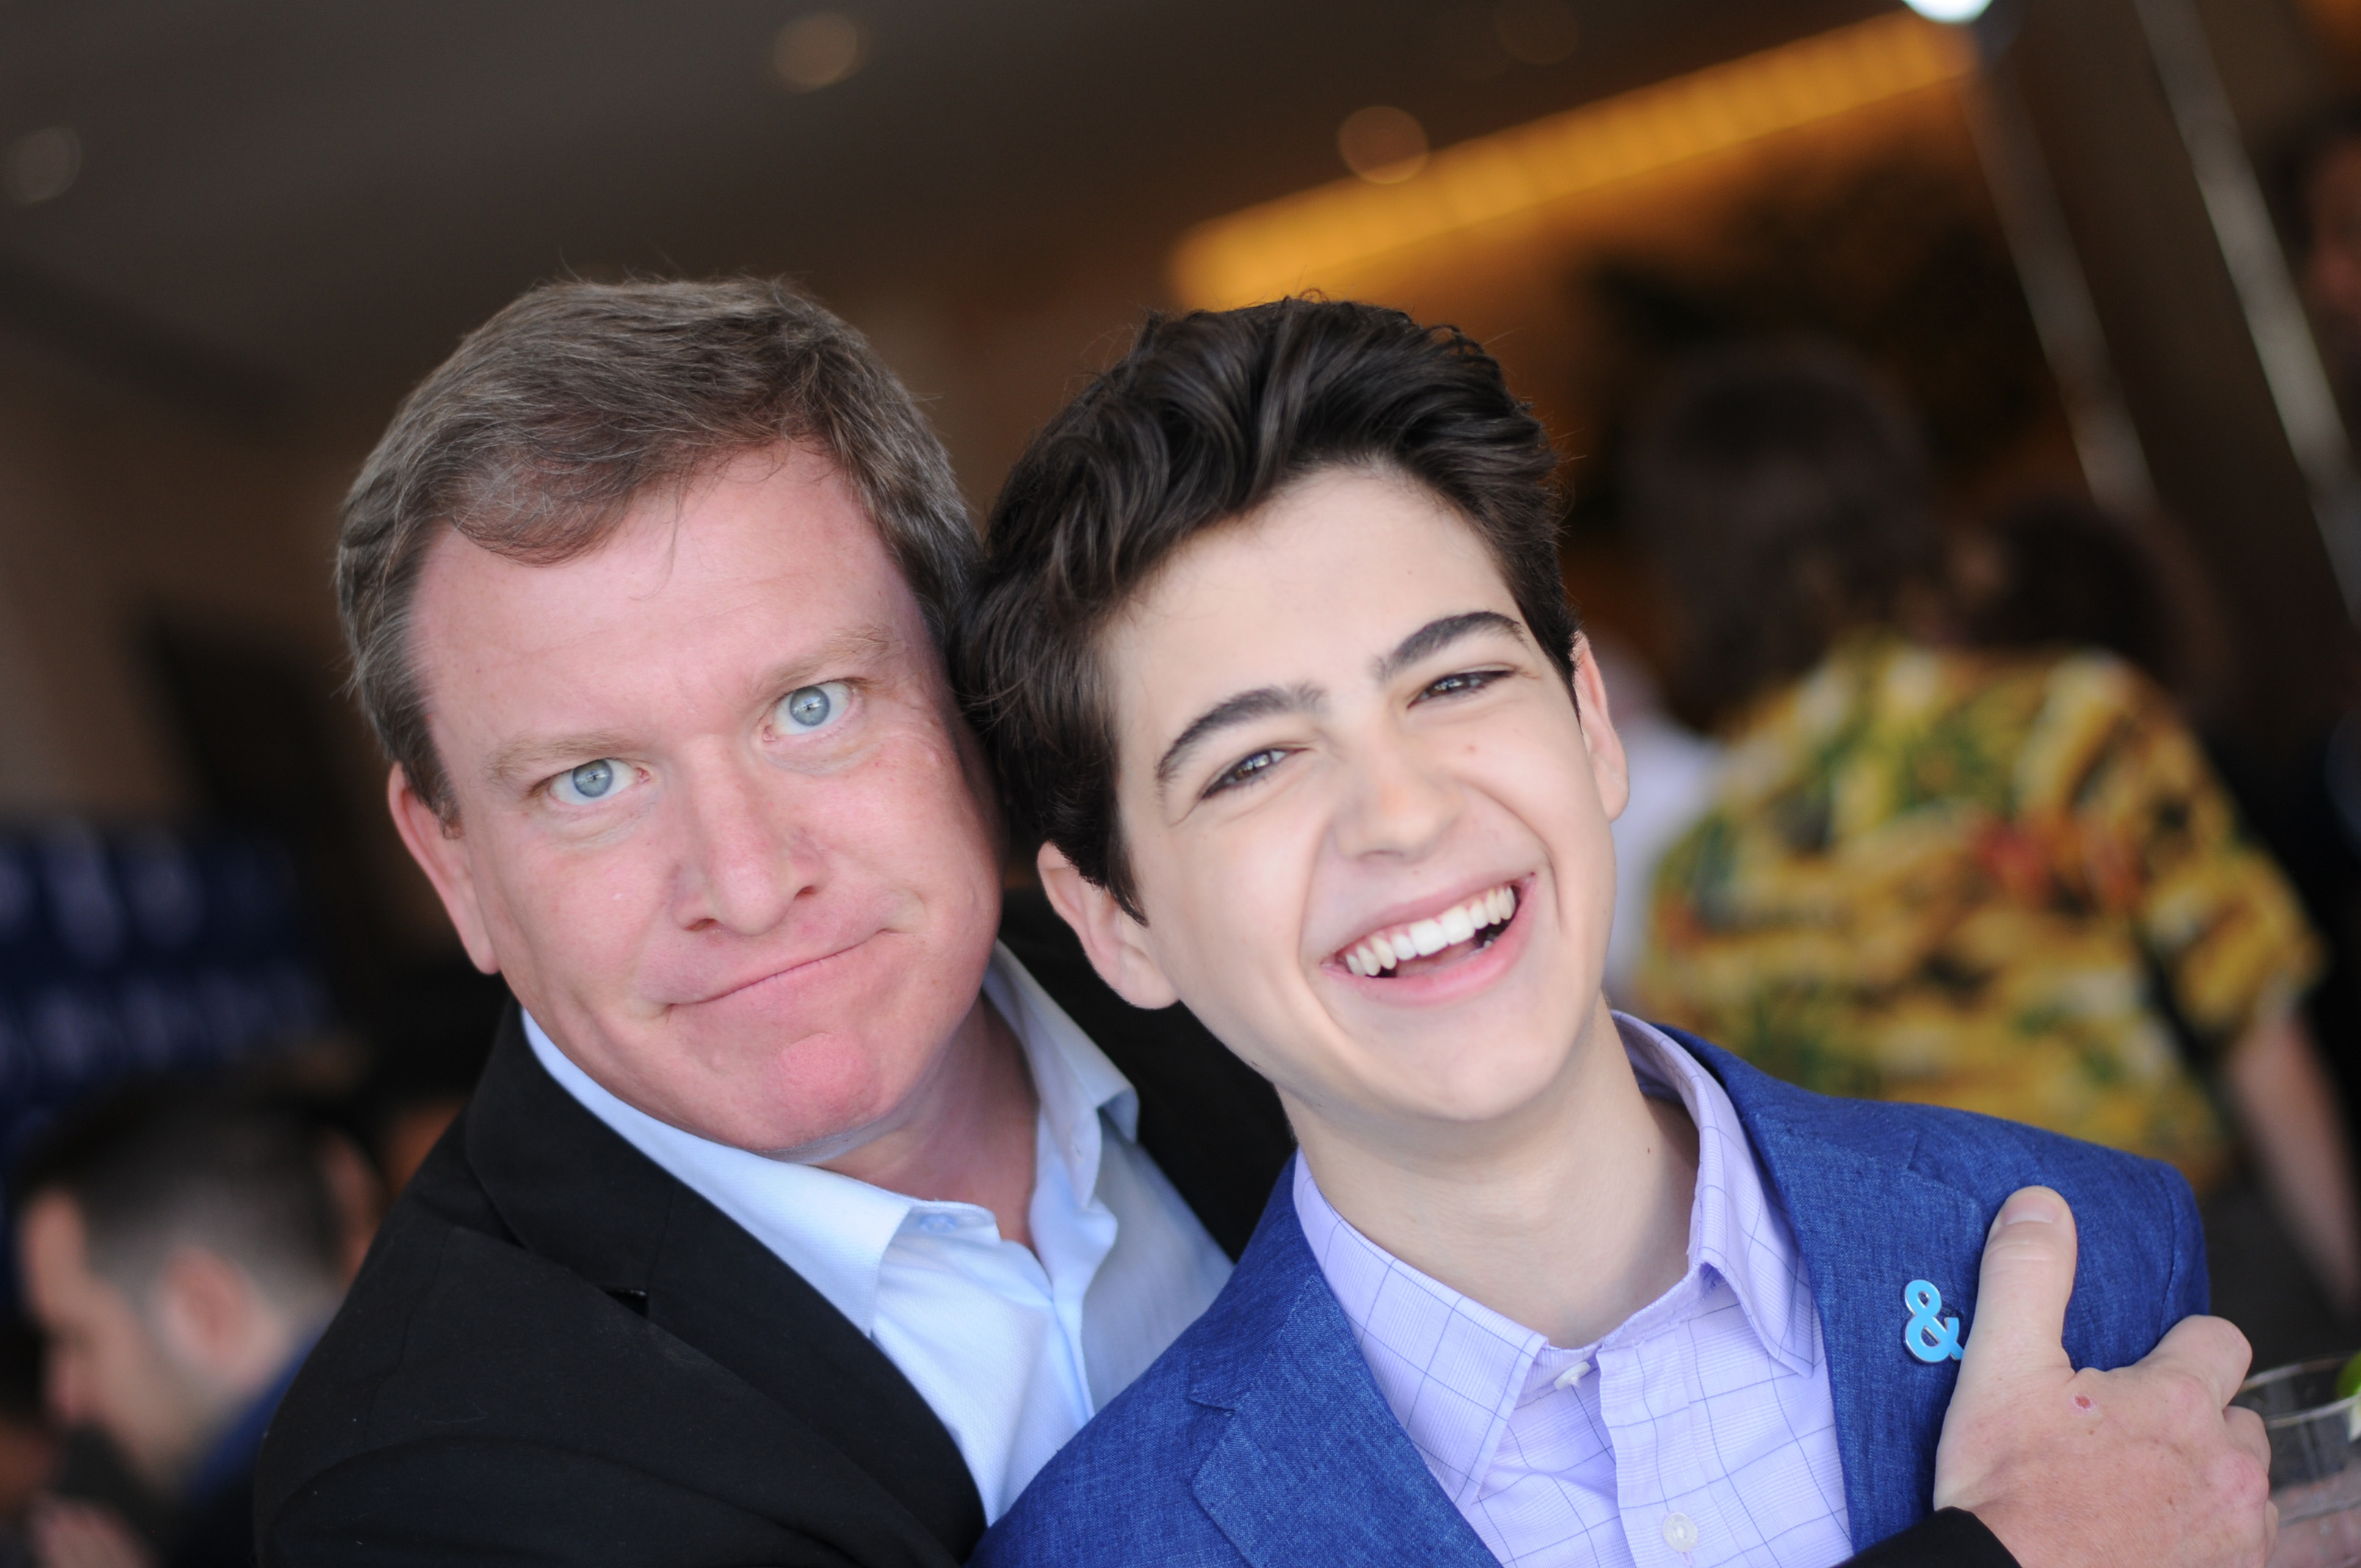 Stoney Westmoreland and Joshua Rush attend Rising Stars at the GLAAD Media Awards Los Angeles at The Beverly Hilton Hotel on April 11, 2018 in Beverly Hills, California.